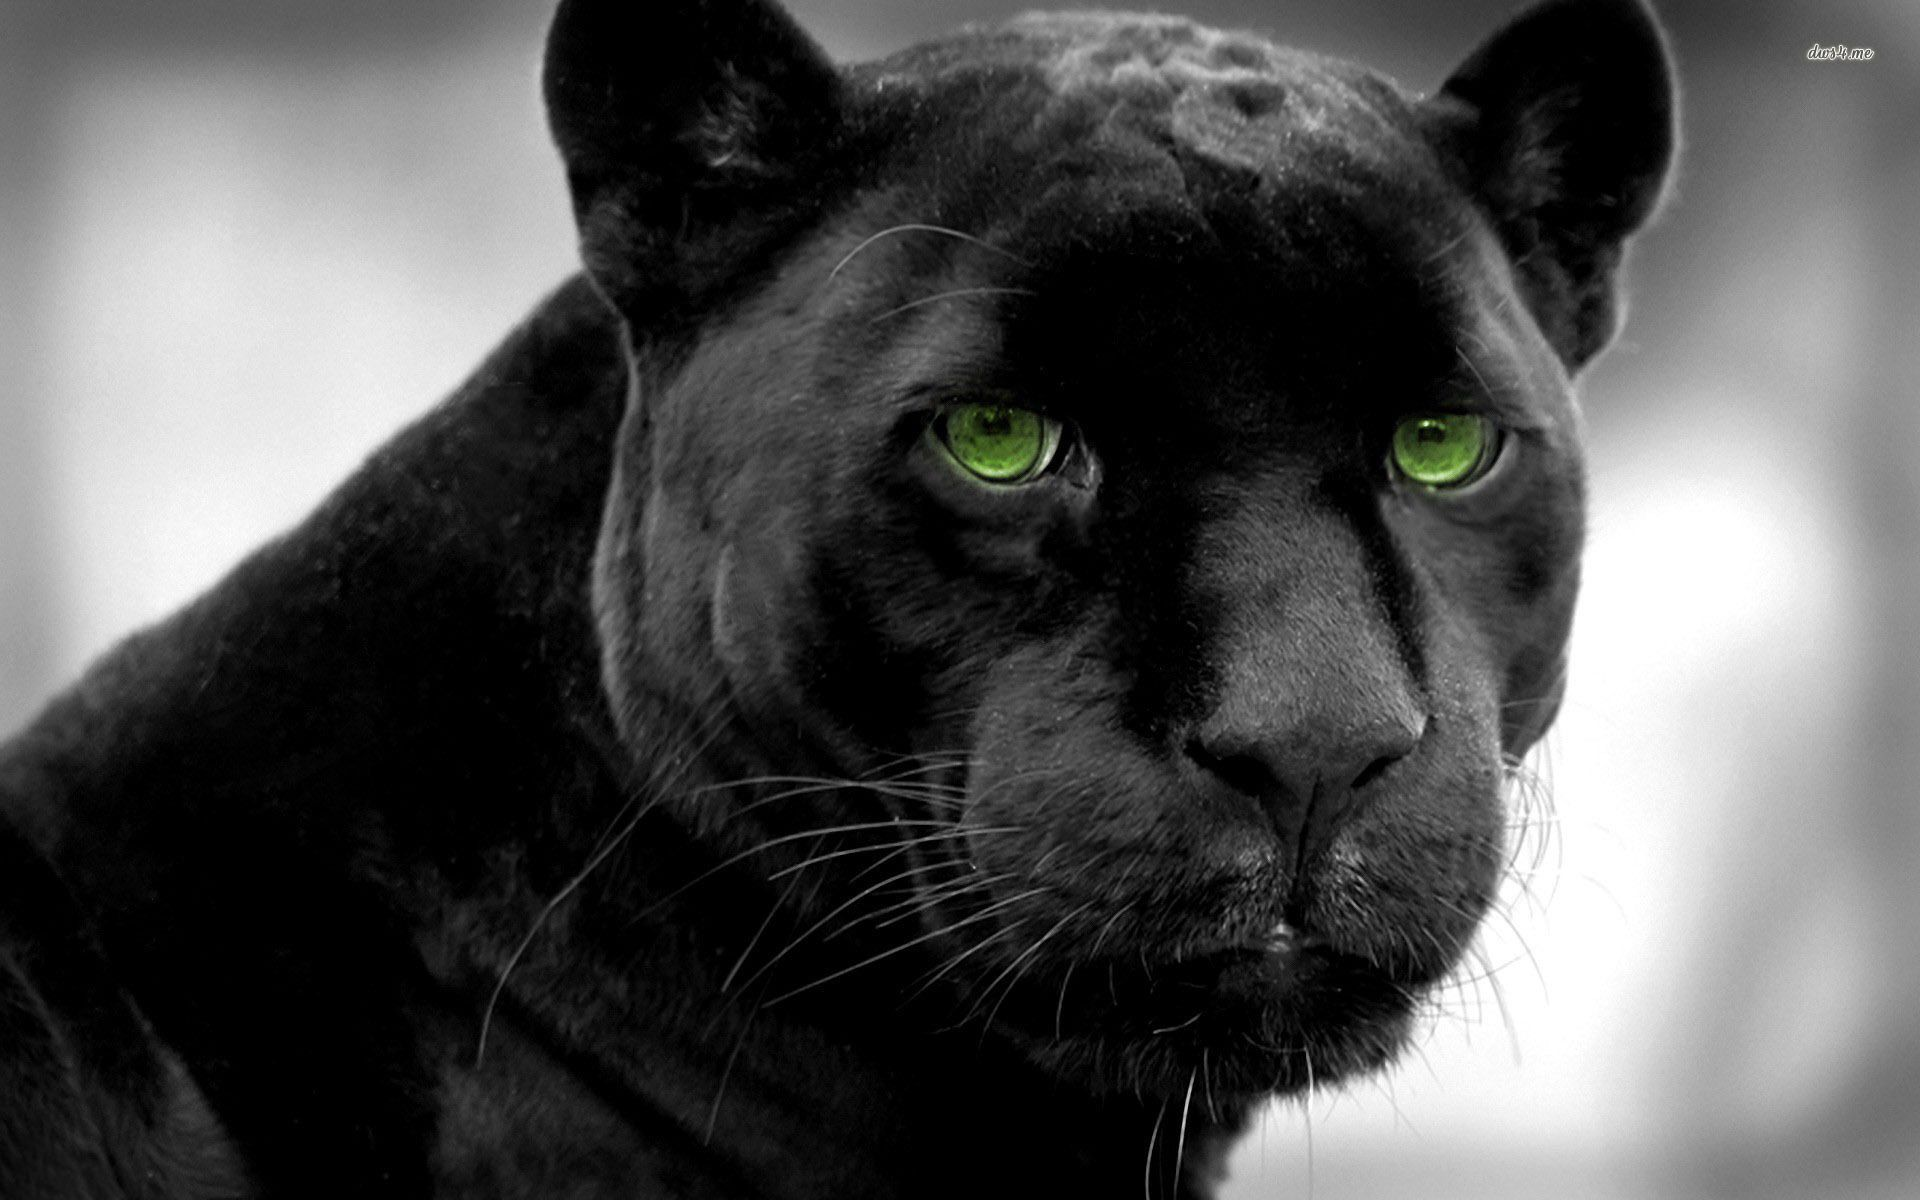 Black panther wallpapers full hd wallpaper search wild - Jaguar animal hd wallpapers ...